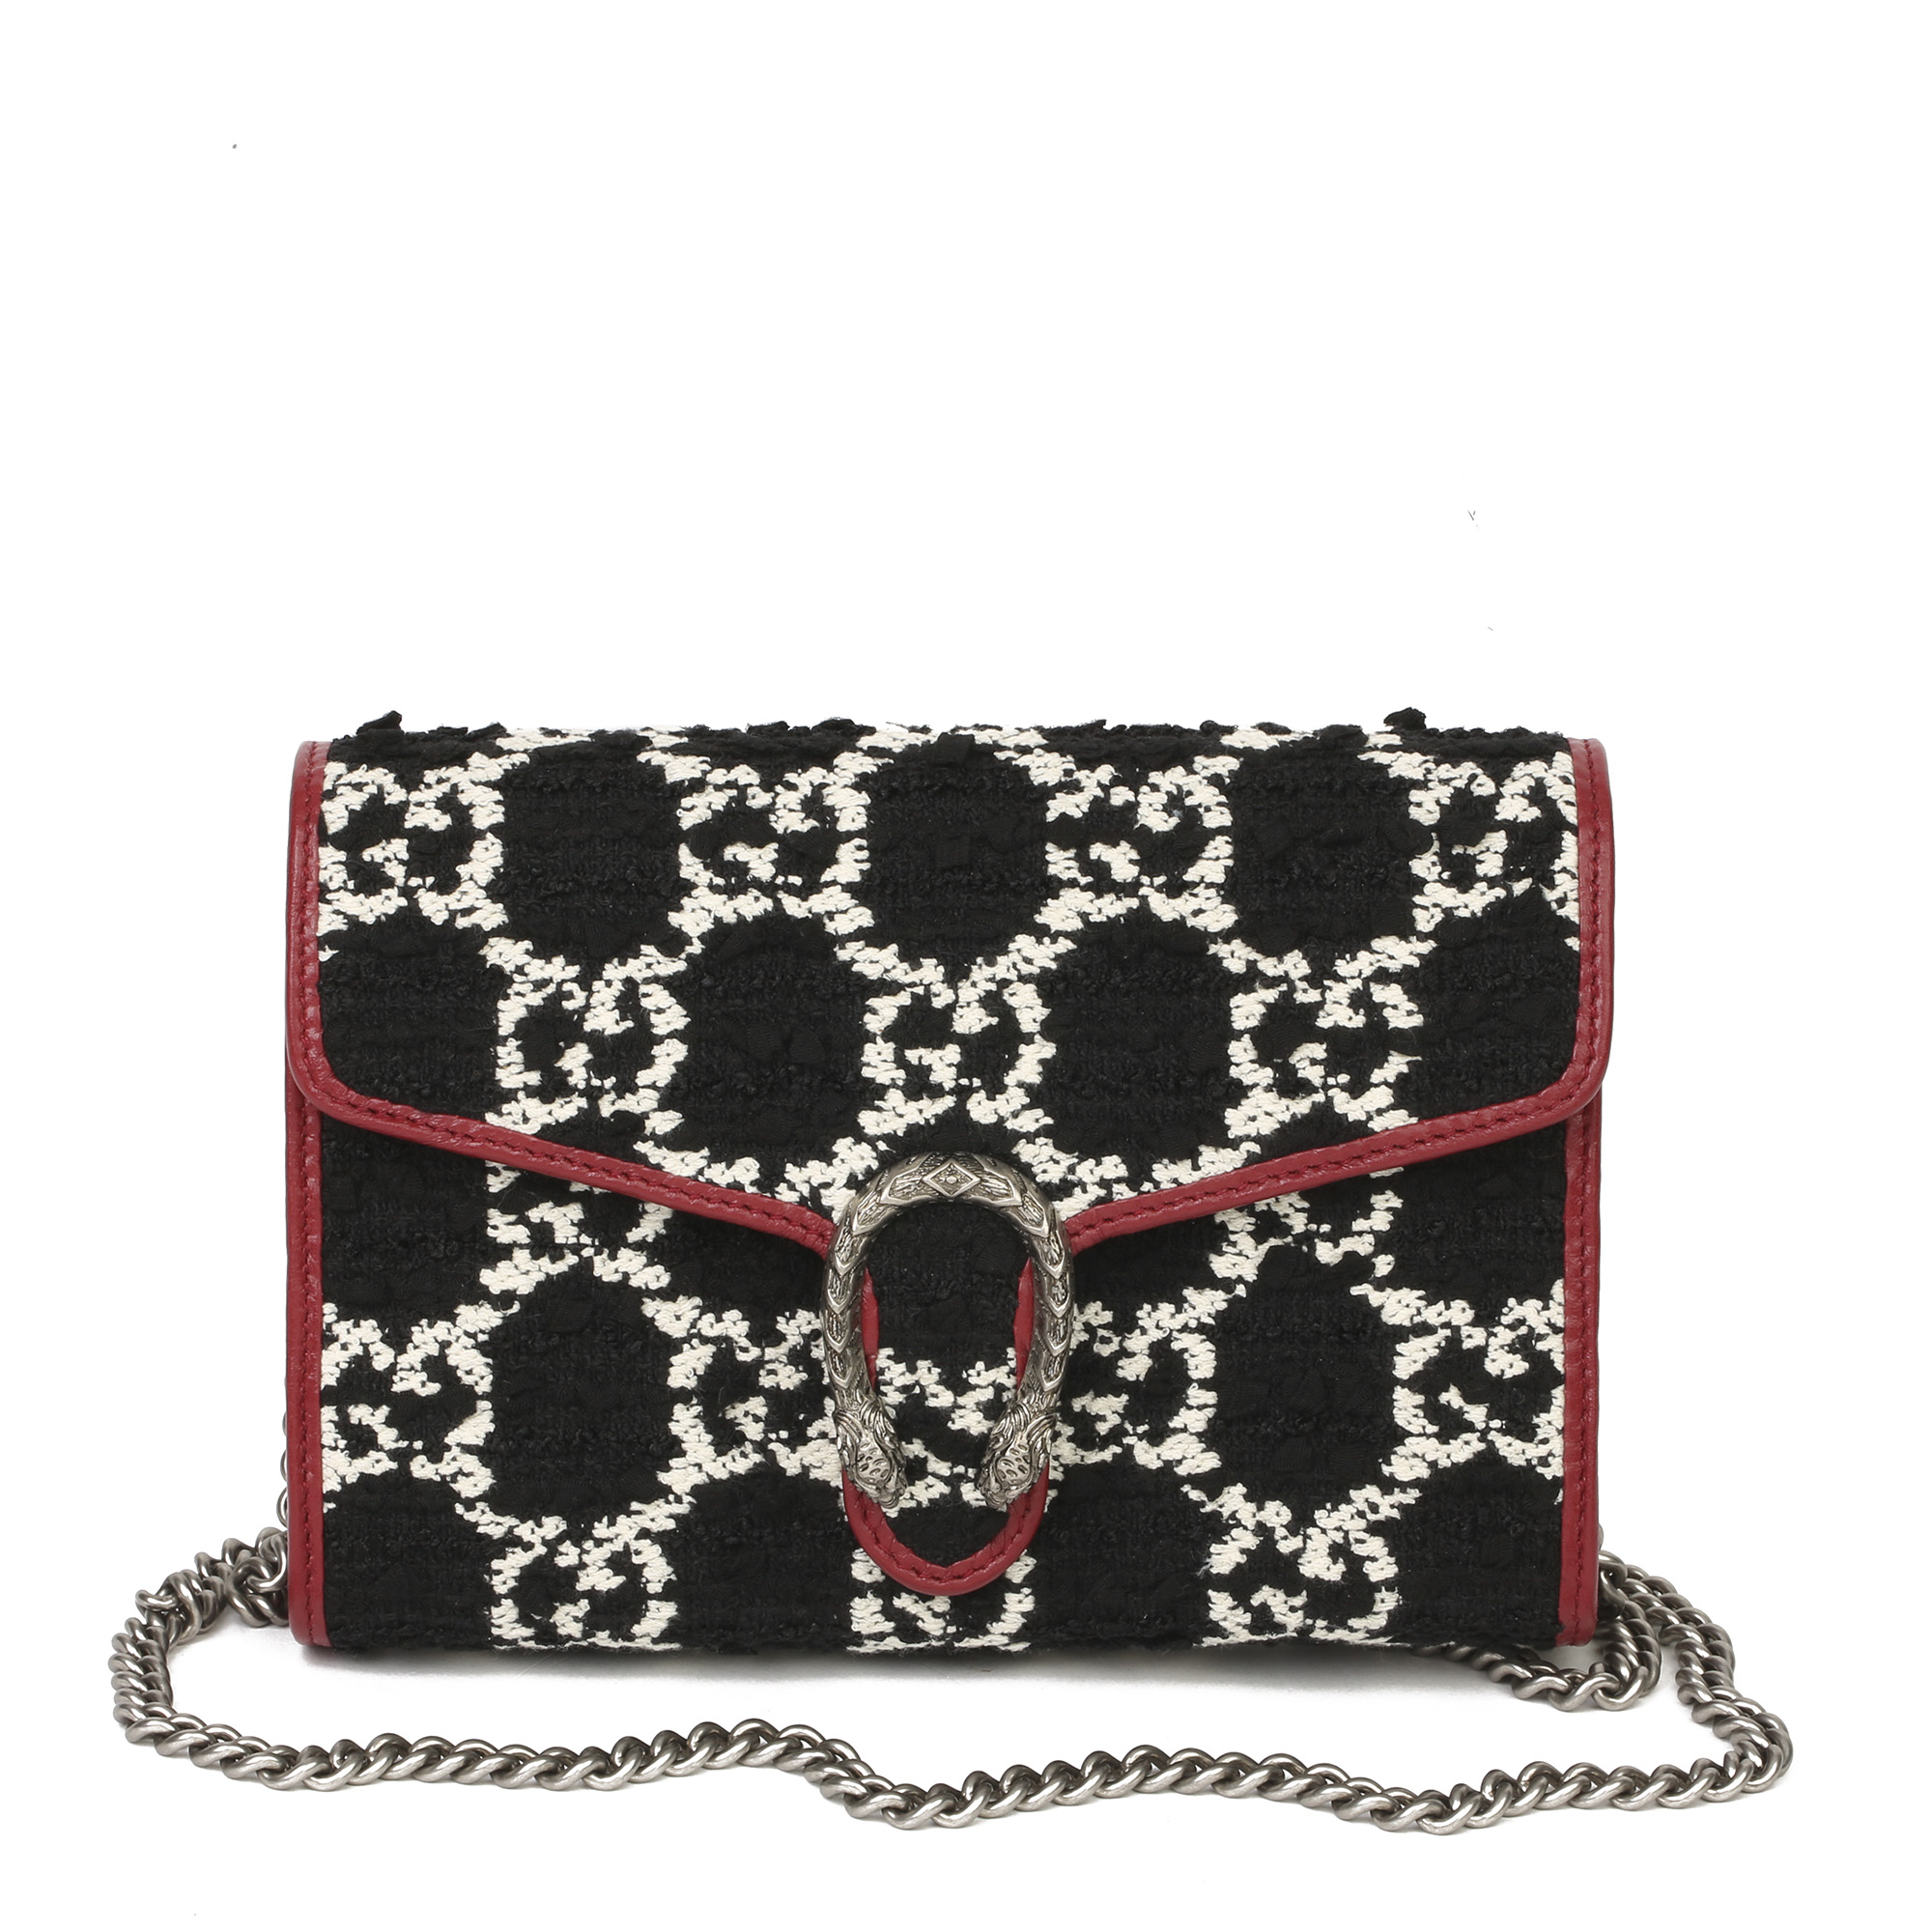 Gucci Red Calfskin & Black, White GG Tweed Dionysus Wallet-on-Chain